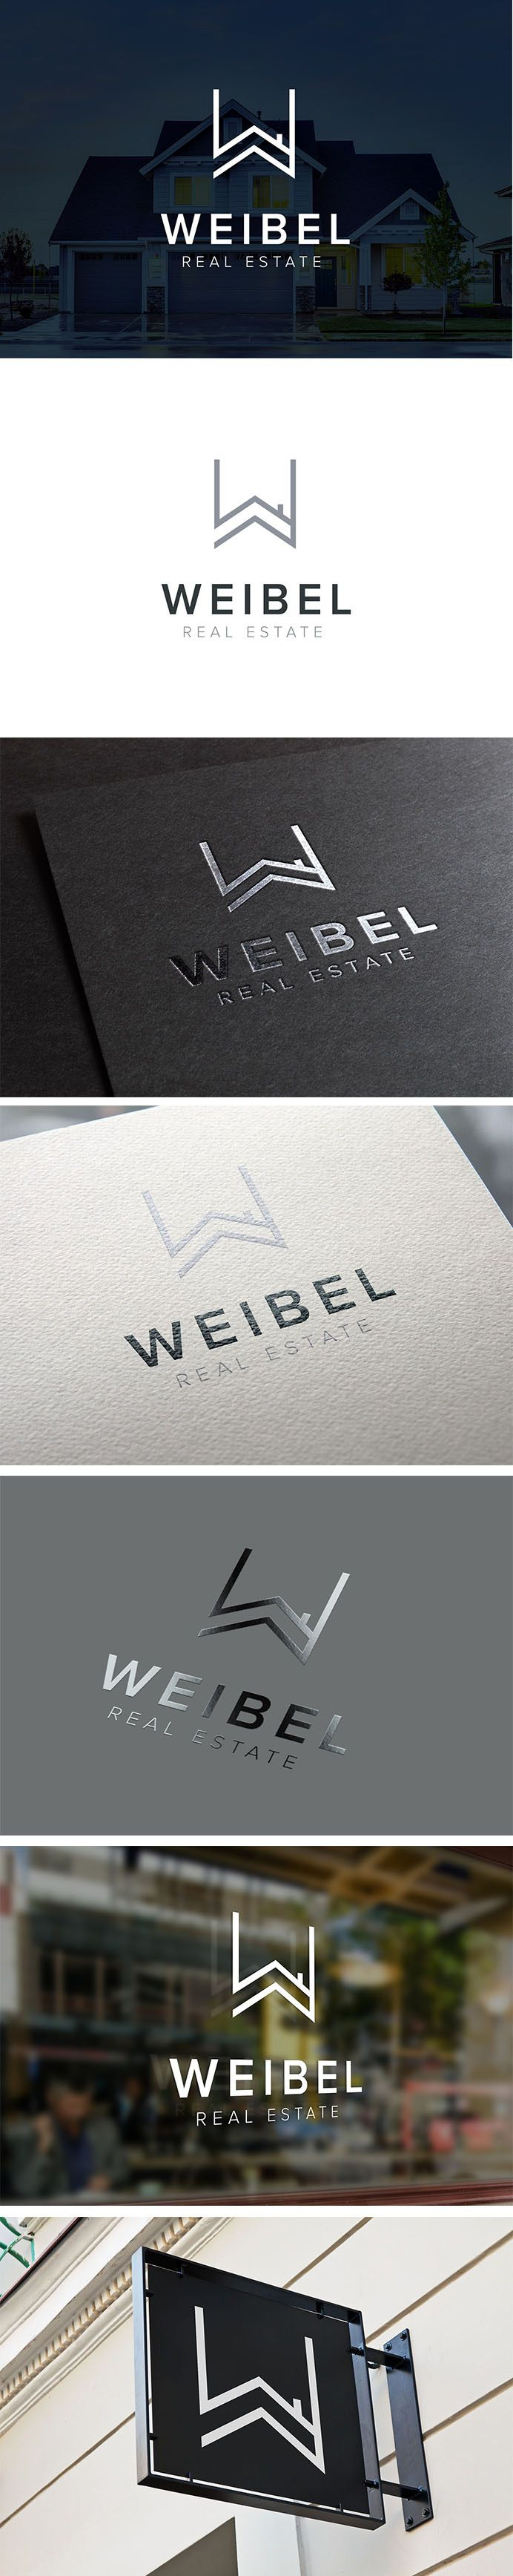 Real Estate Logo Design, Property Management Brand Identity  |  Letter W, mark, roof, villa, house, development  |  Weibel Real Estate, Geneva Switzerland  |  Valhalla Creative Design, Perth